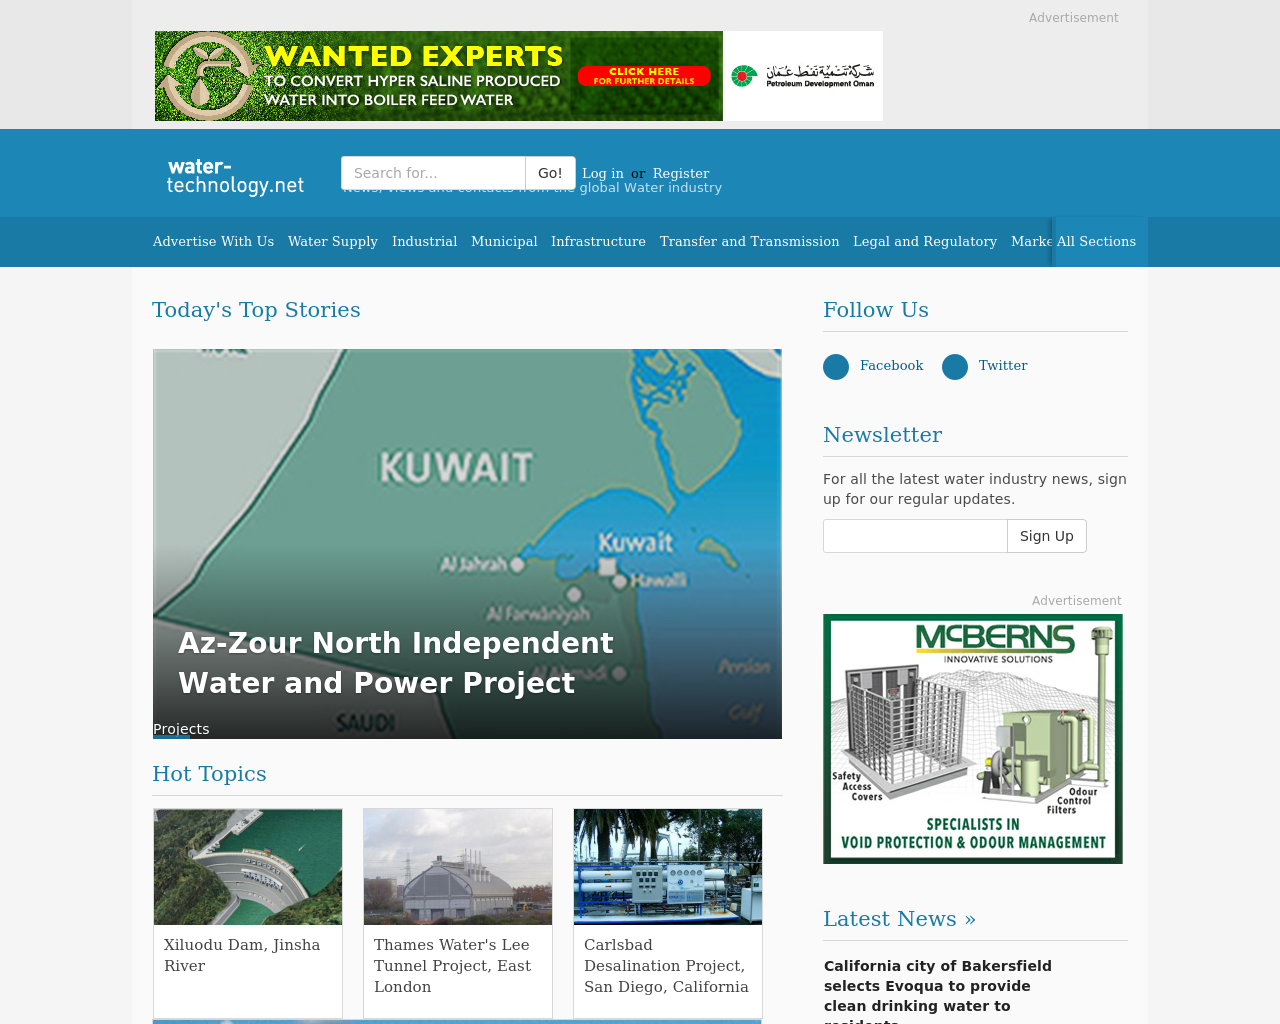 water-technology.net-Advertising-Reviews-Pricing